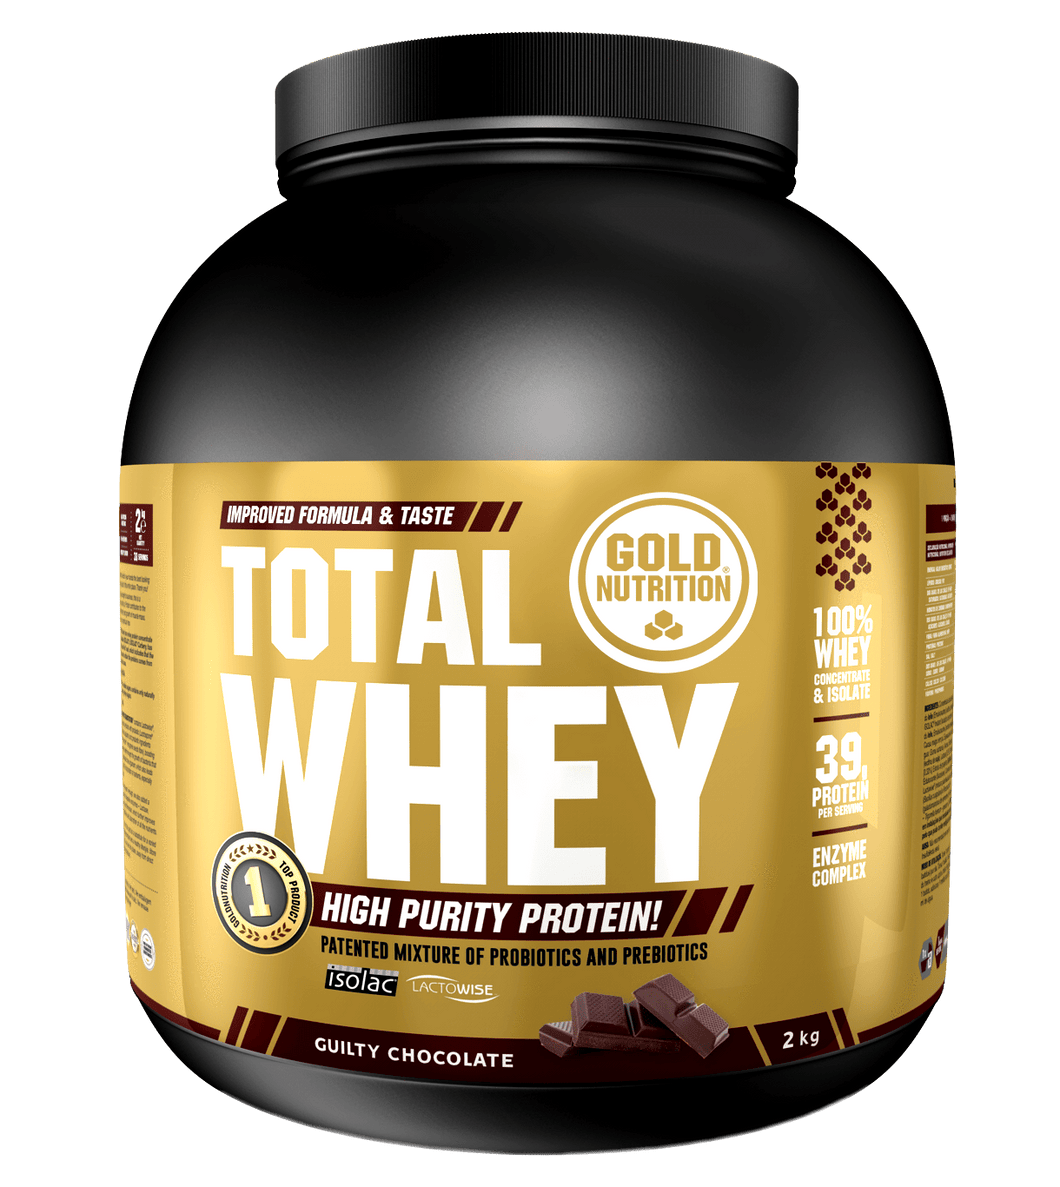 Total whey with probiotics & prebiotics: 10% off - 1kg & 2kg - GoldNutrition Hong Kong